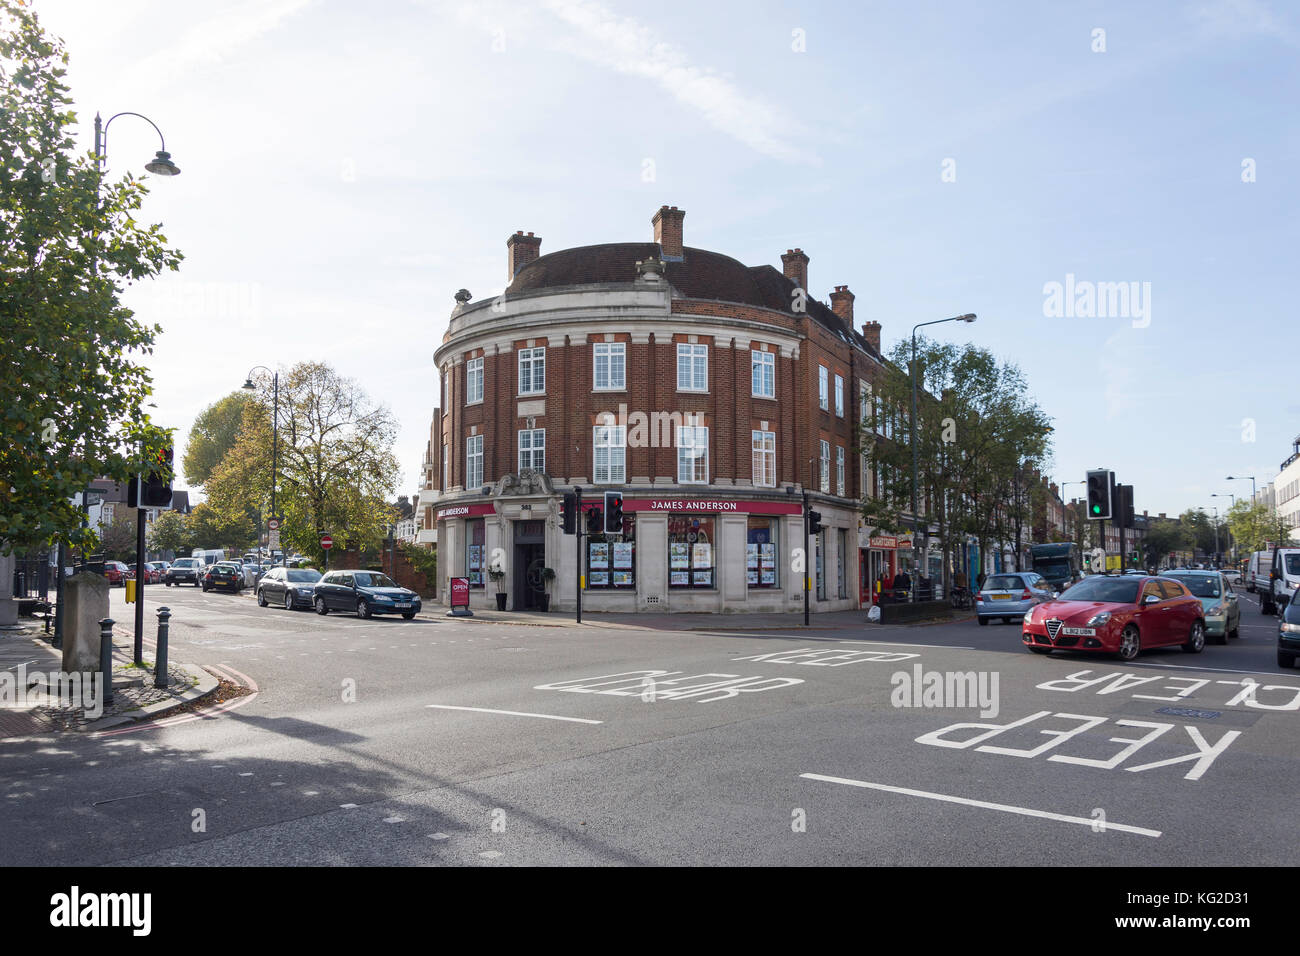 Il triangolo e Upper Richmond Road, East Sheen, London Borough of Richmond upon Thames, Greater London, England, Immagini Stock